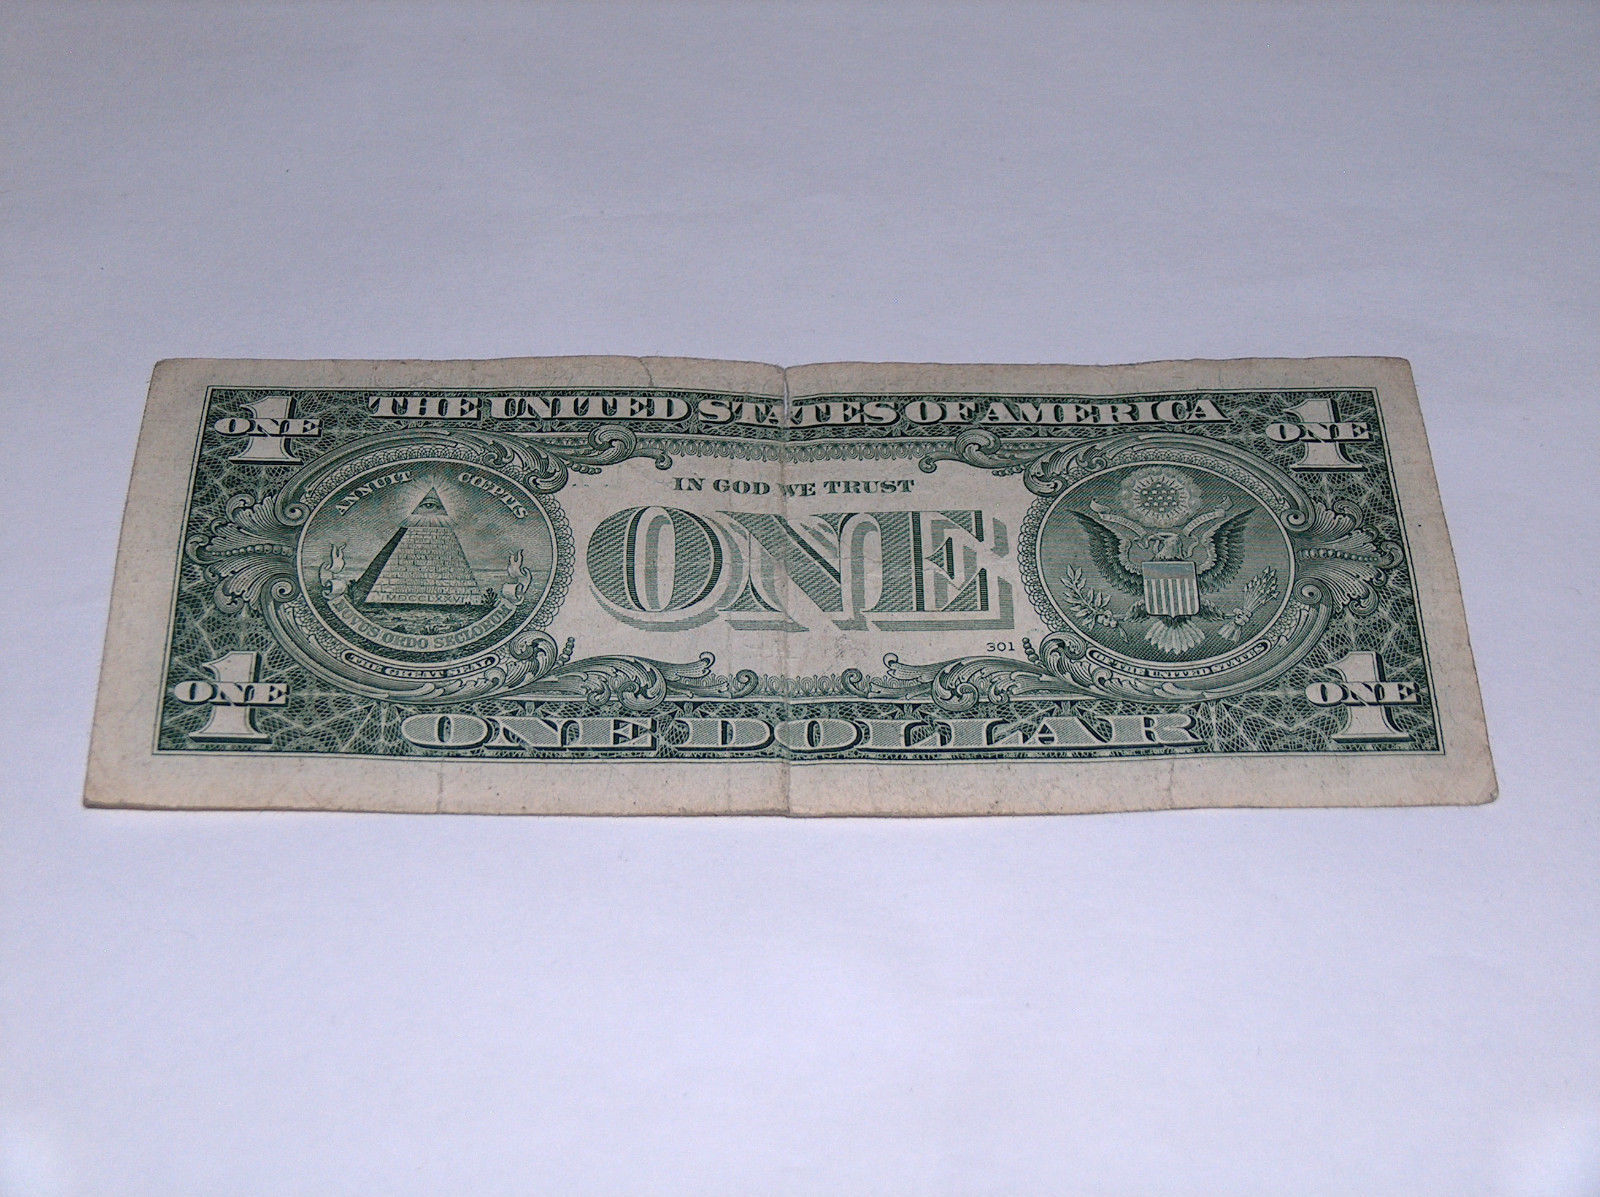 2009 $1 Dollar Bill US Bank Note Year Date Birthday 1950 9985 Fancy Money Serial image 2